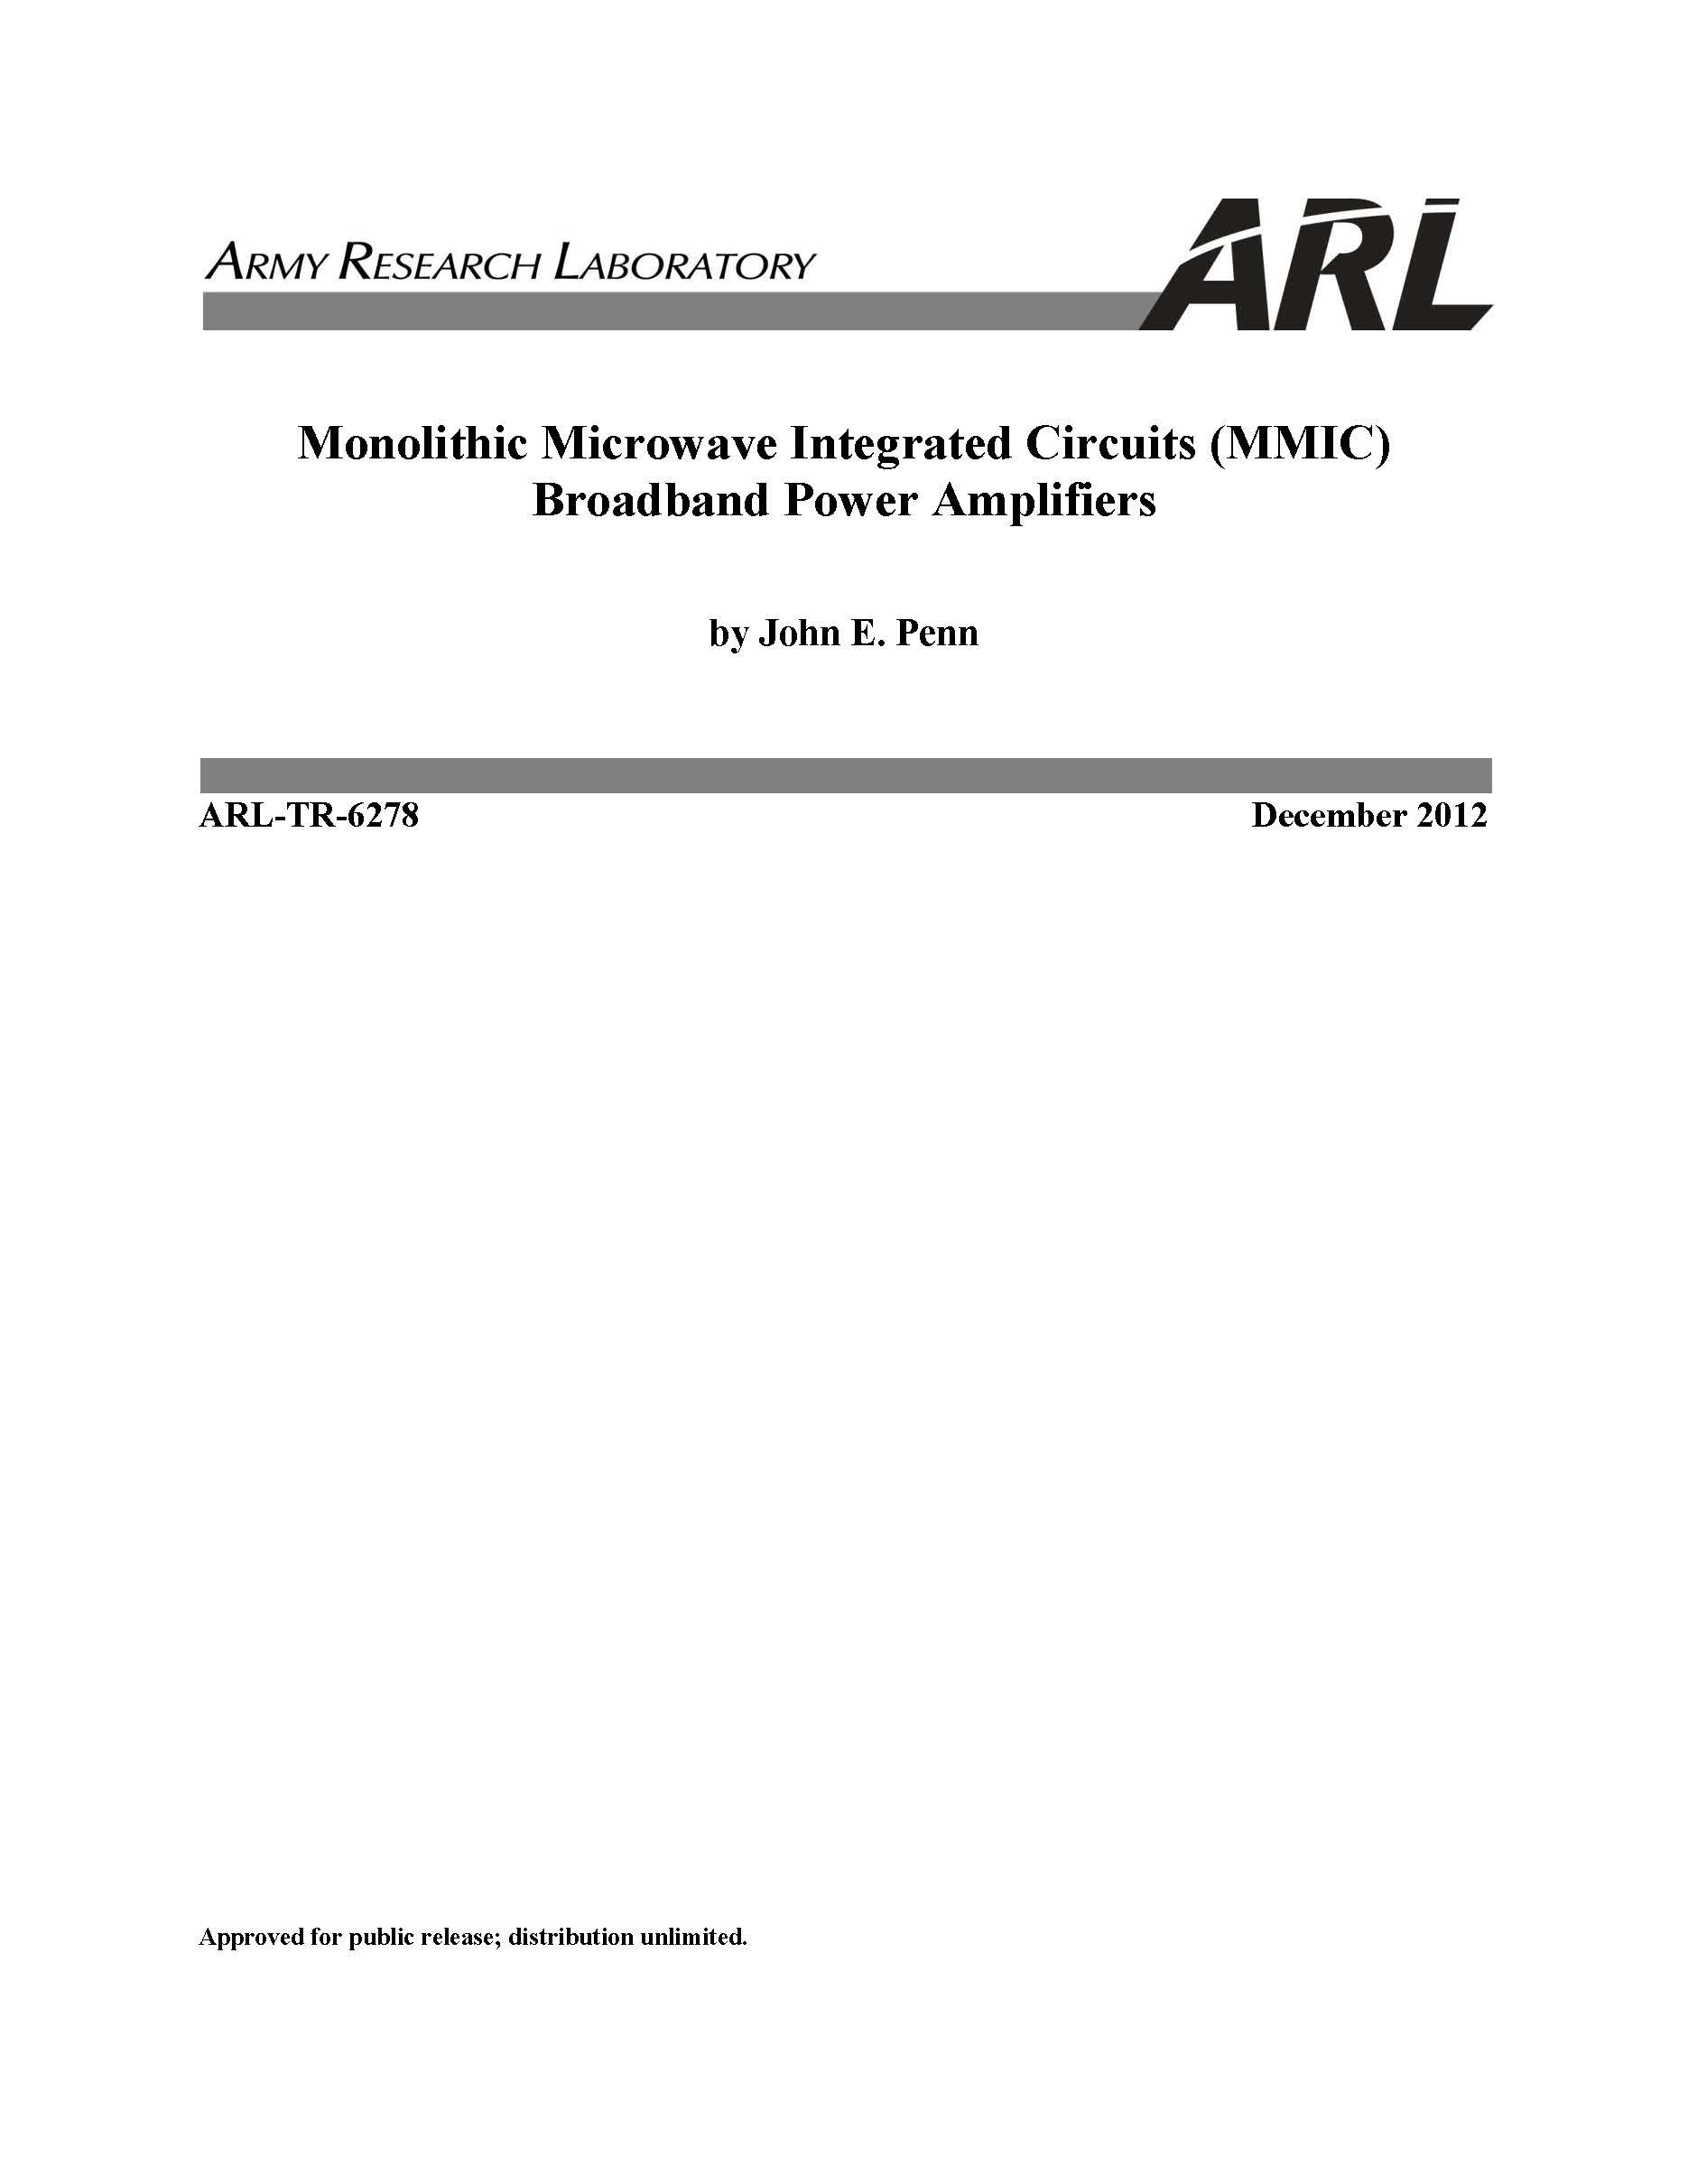 Arl Tr 6278 Monolithic Microwave Integrated Circuits Mmic Circuit Quality Broadband Power Amplifiers Loose Leaf Publication John E Penn Army Research Laboratory